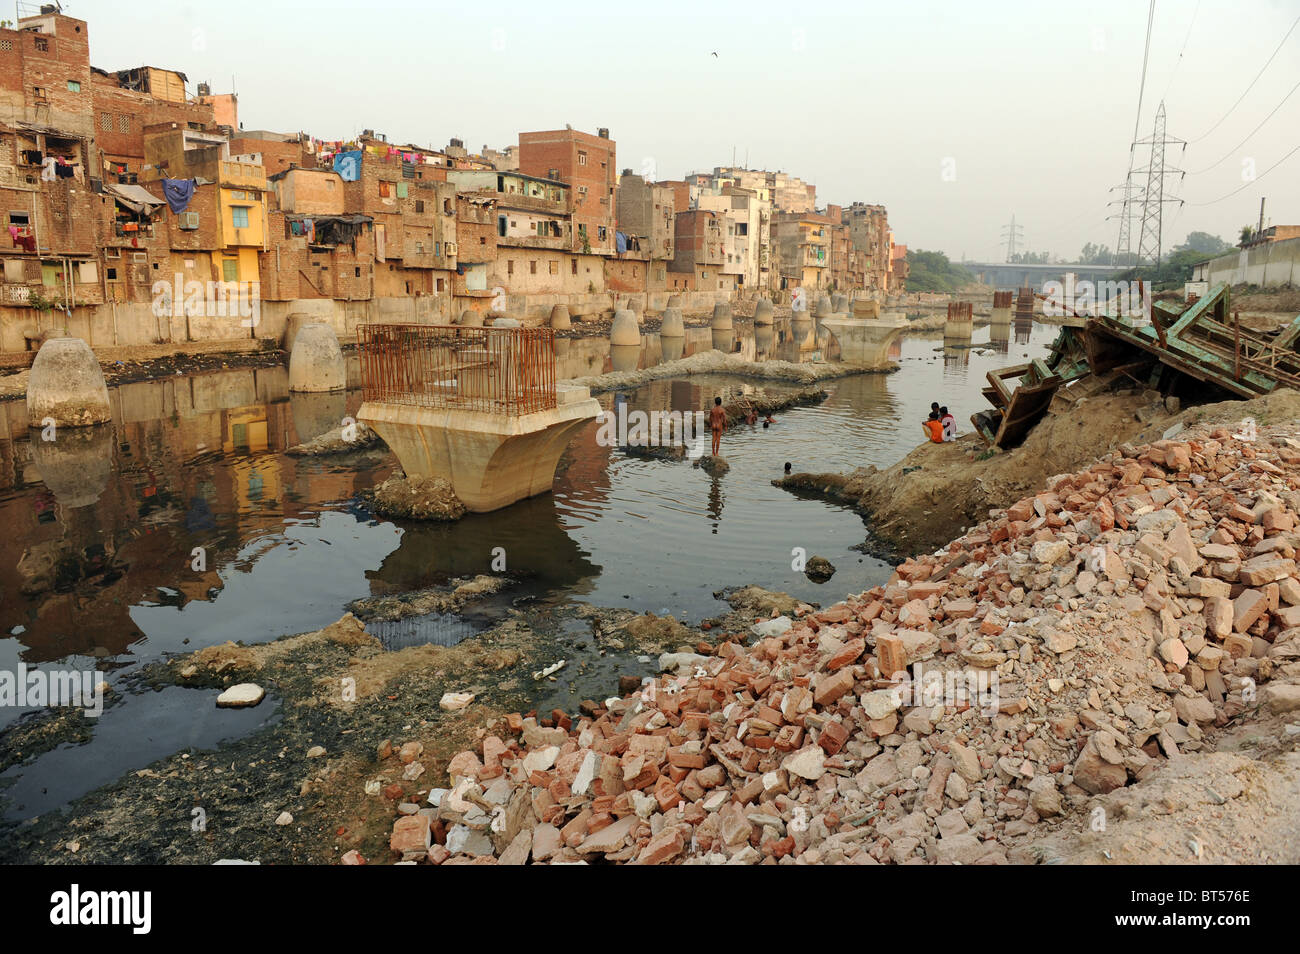 Children swimming in dirty water in India's capital New